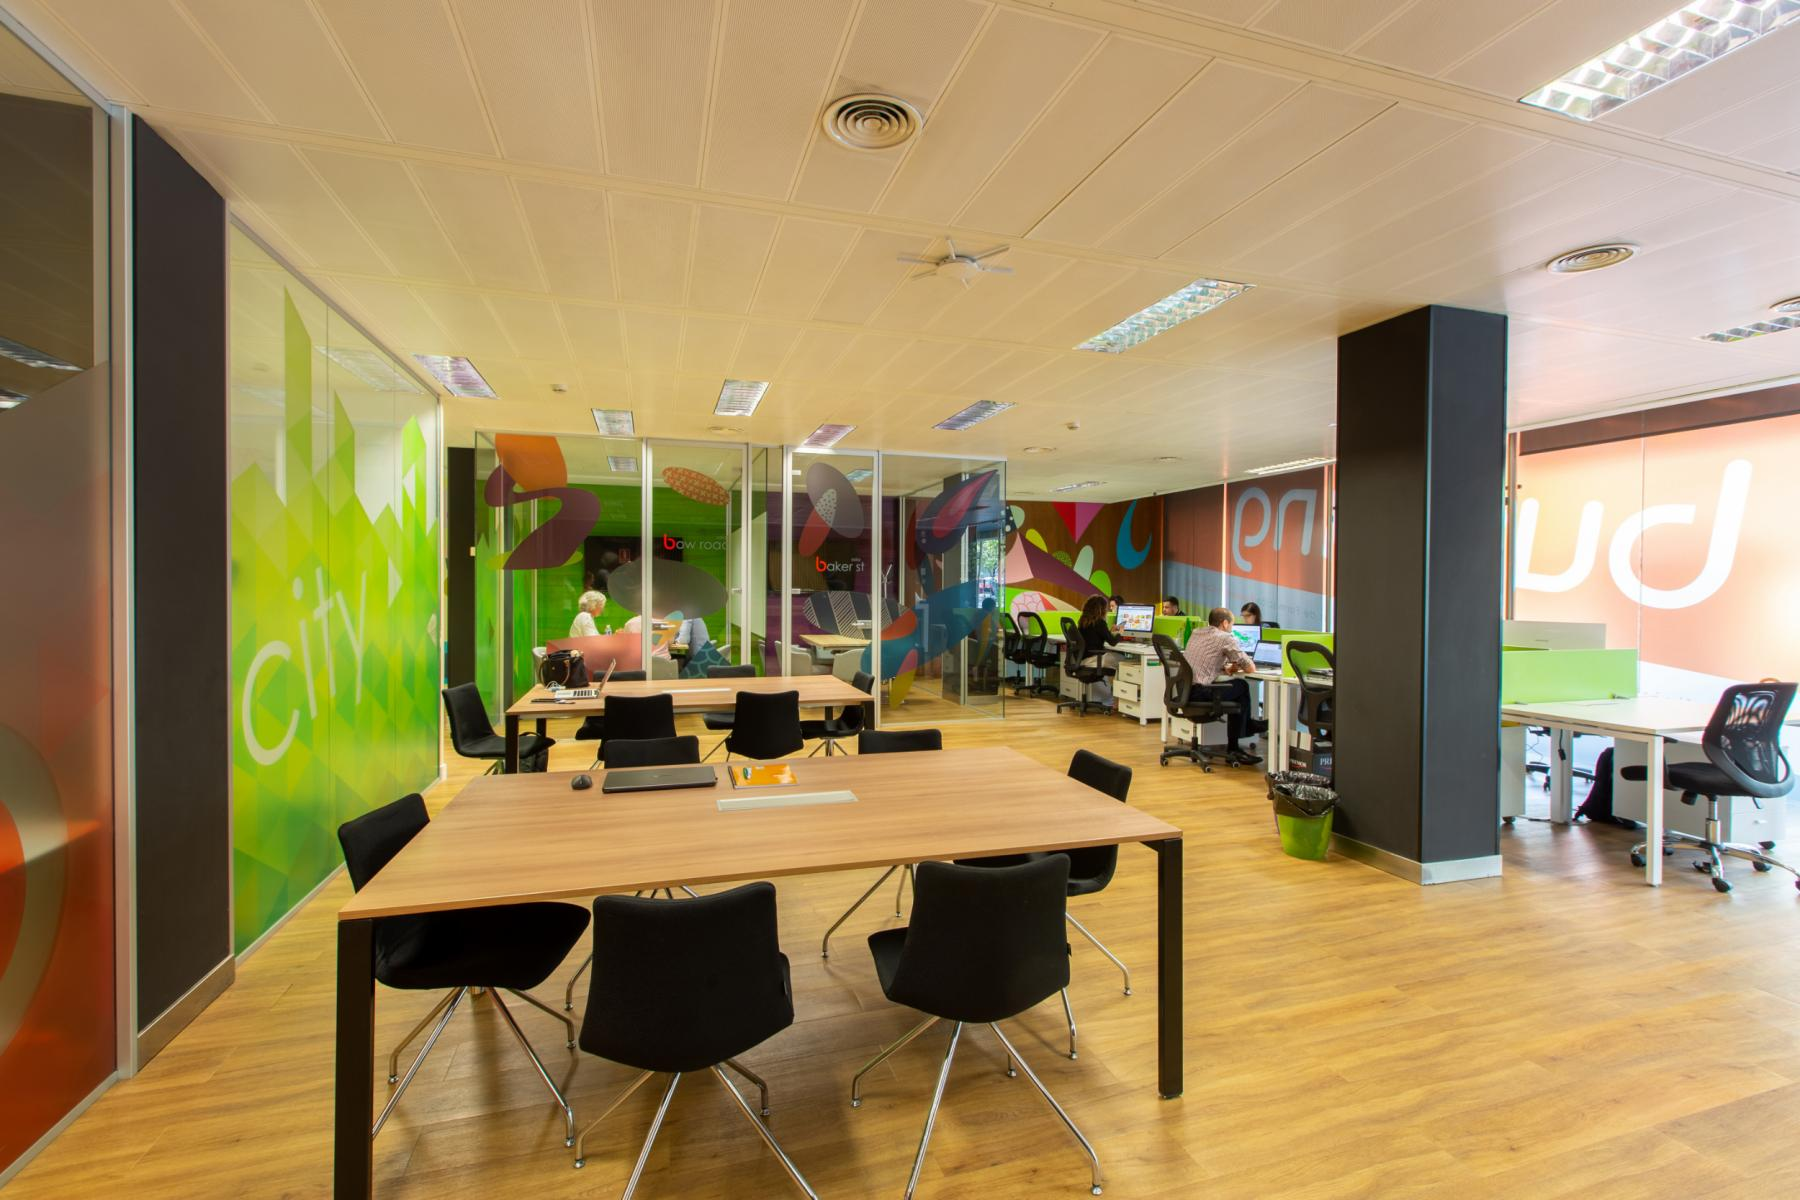 More coworking in Maria molina